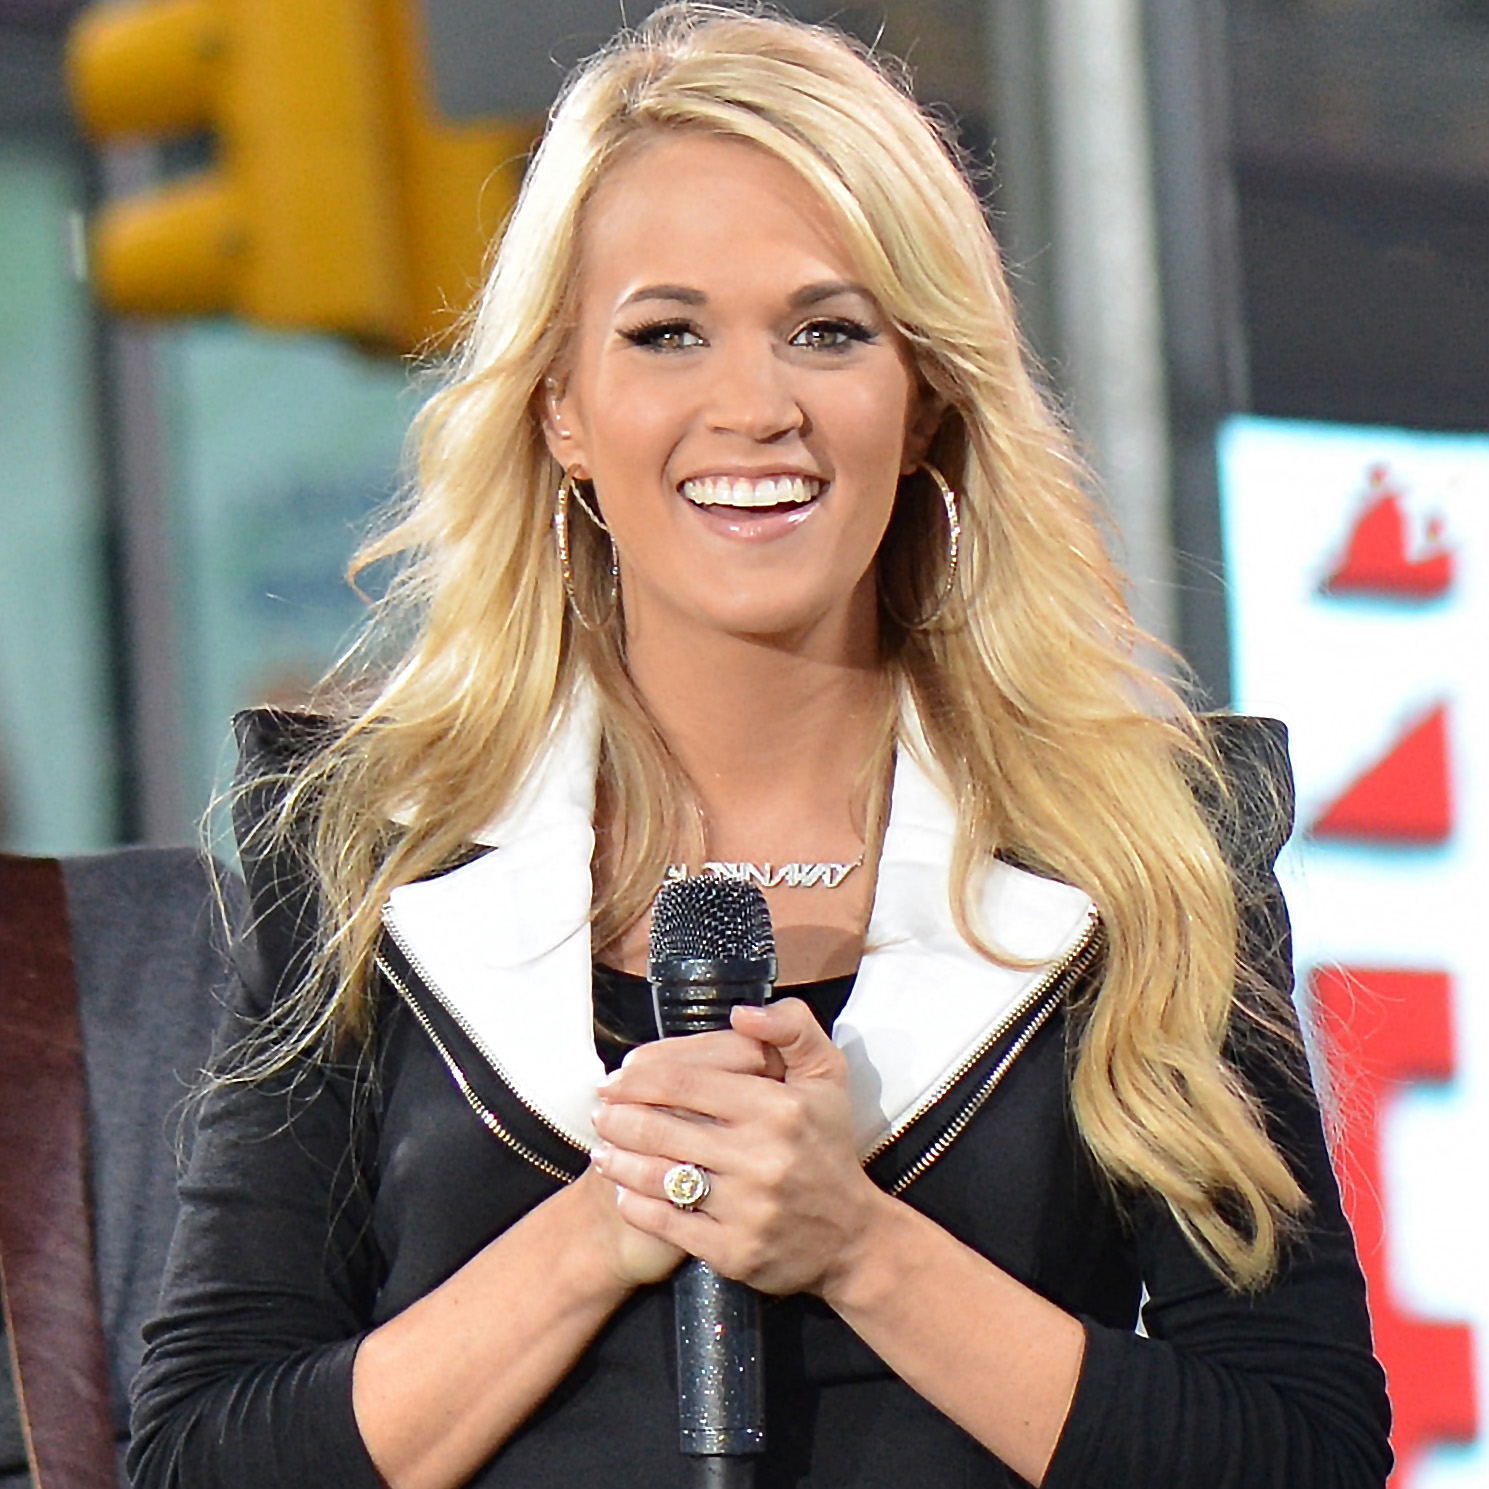 Carrie Underwood Live in Times Square. Photo Credit: Flickr:Dephisticate